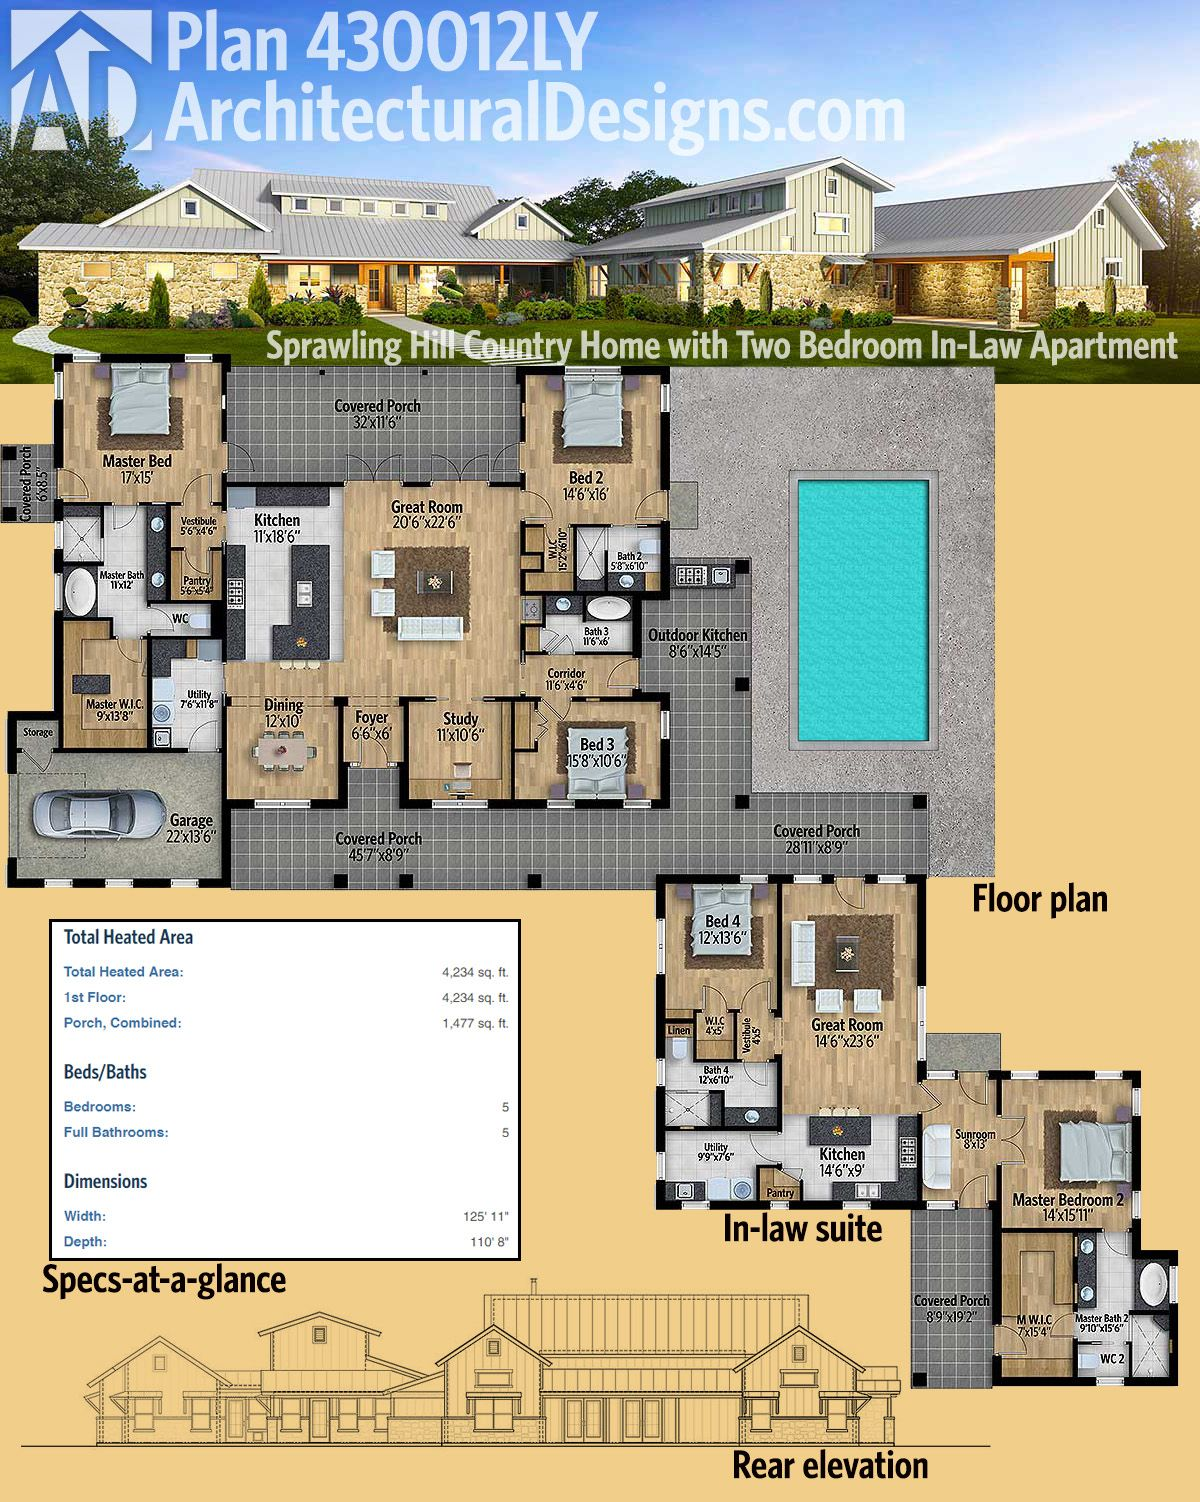 Plan 430012ly sprawling hill country home with two for In law apartment plans